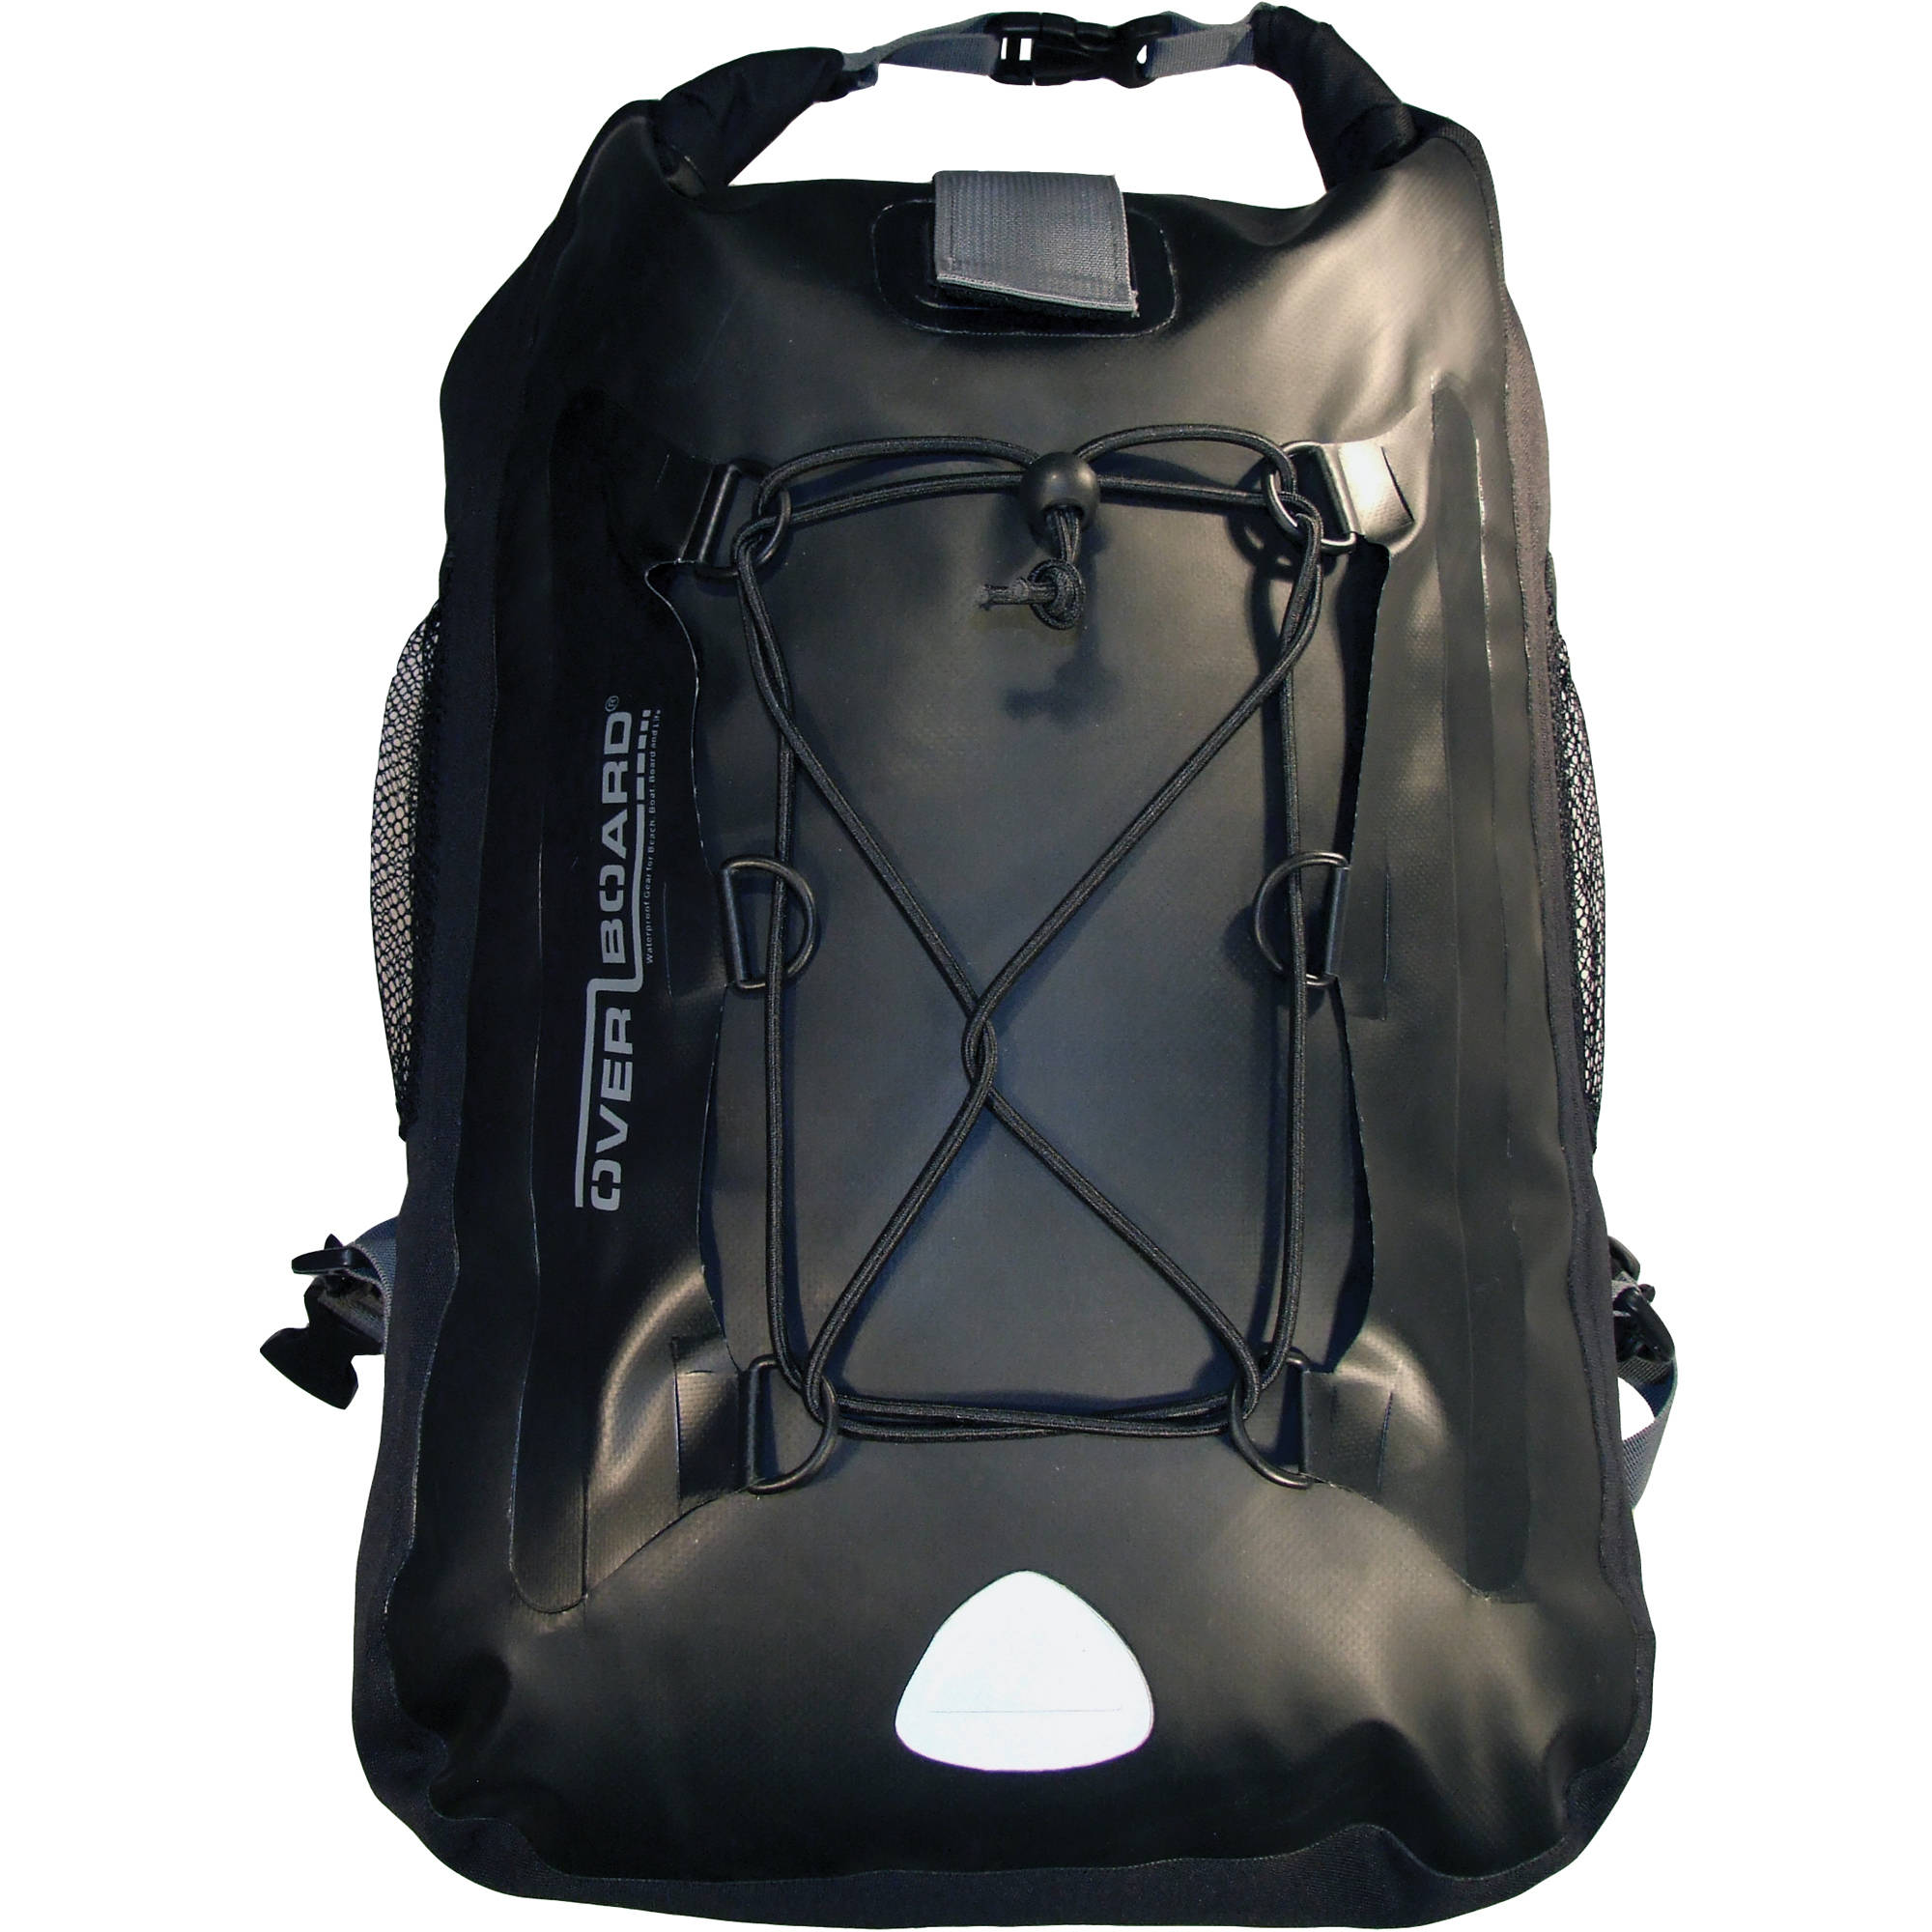 Overboard Waterproof Backpack ExDtPWvc